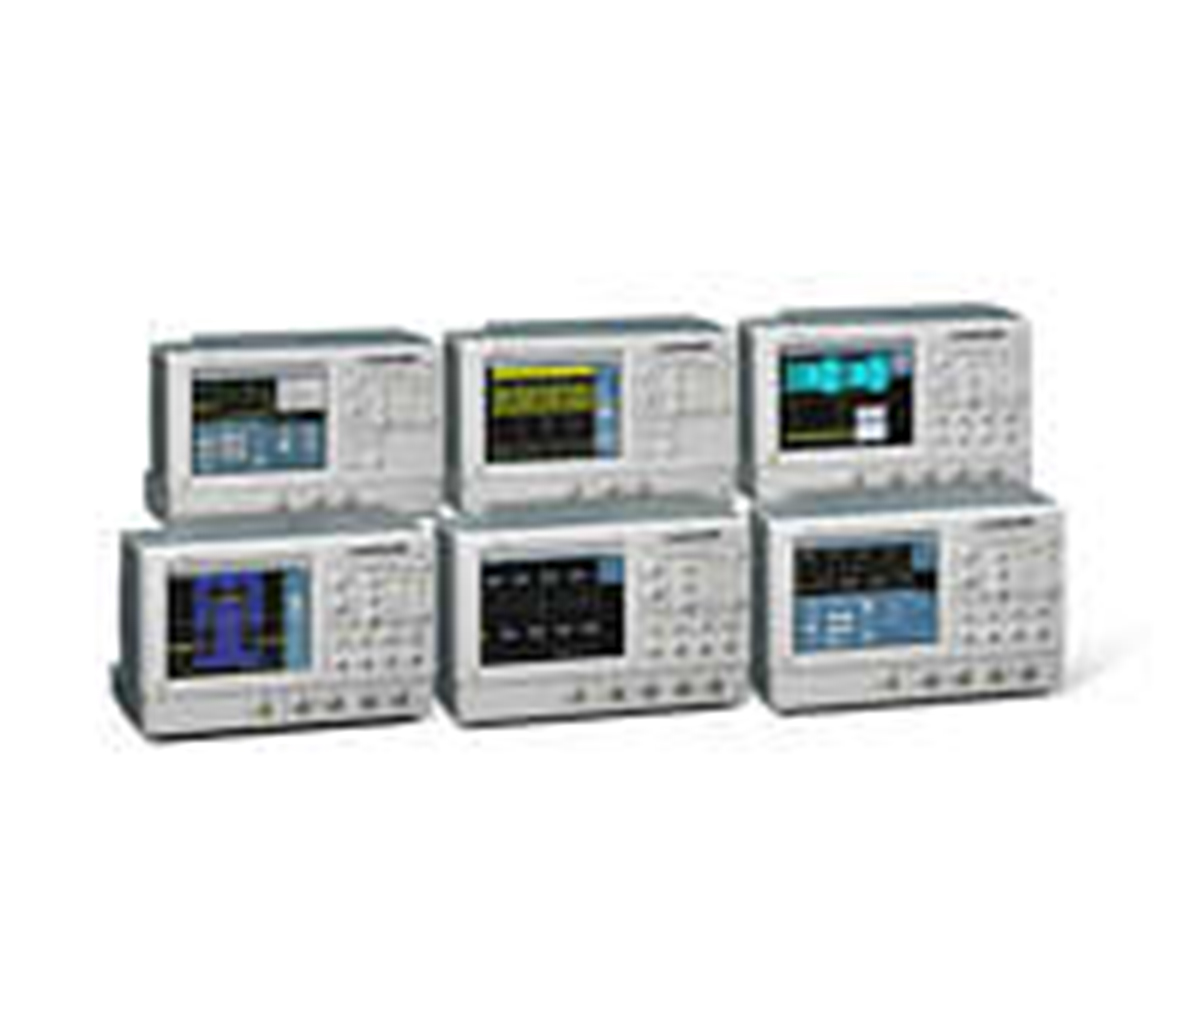 Tektronix - TDS5104 4 Ch 1 GHz Digital Oscilloscope